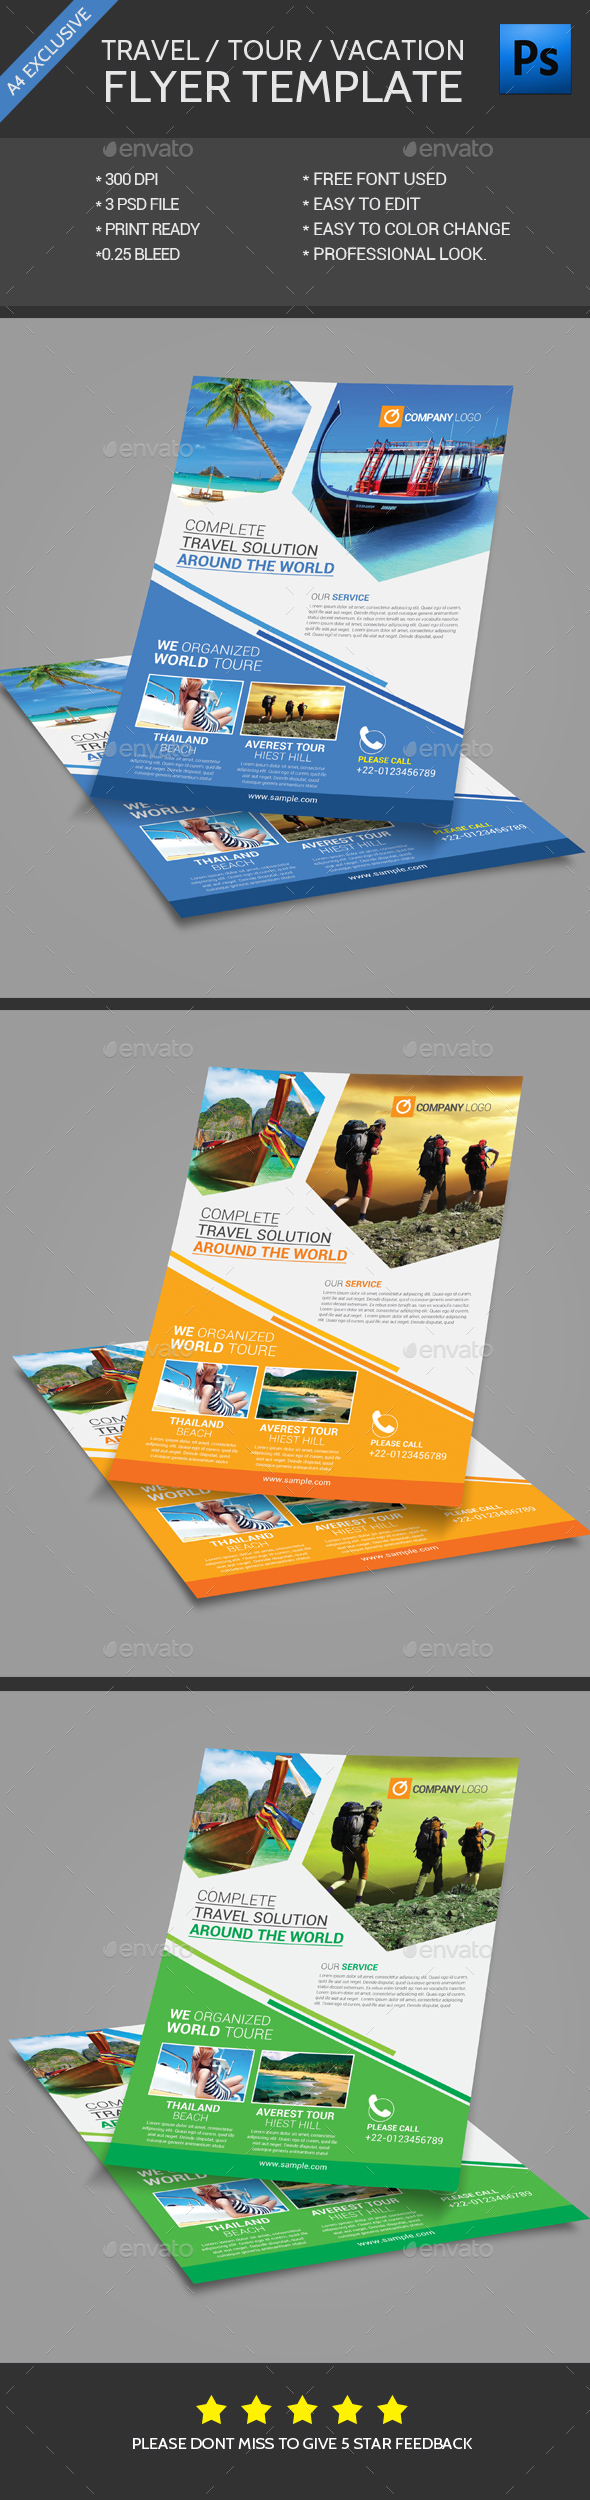 Travel Flyer Template - Flyers Print Templates